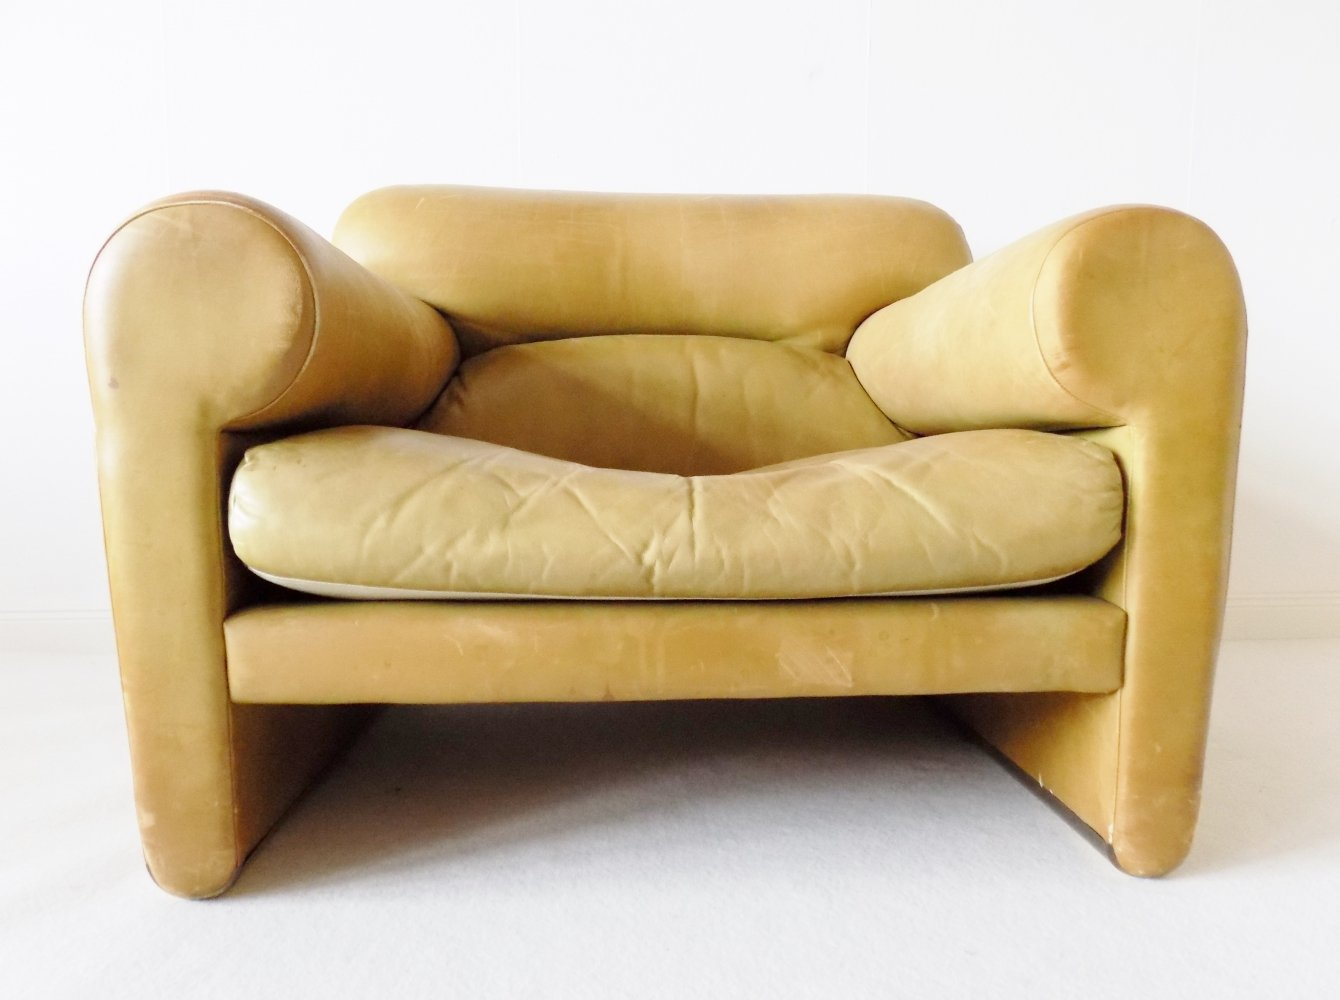 Mustard colored leather arm chair by Poltrona Frau, 1970s